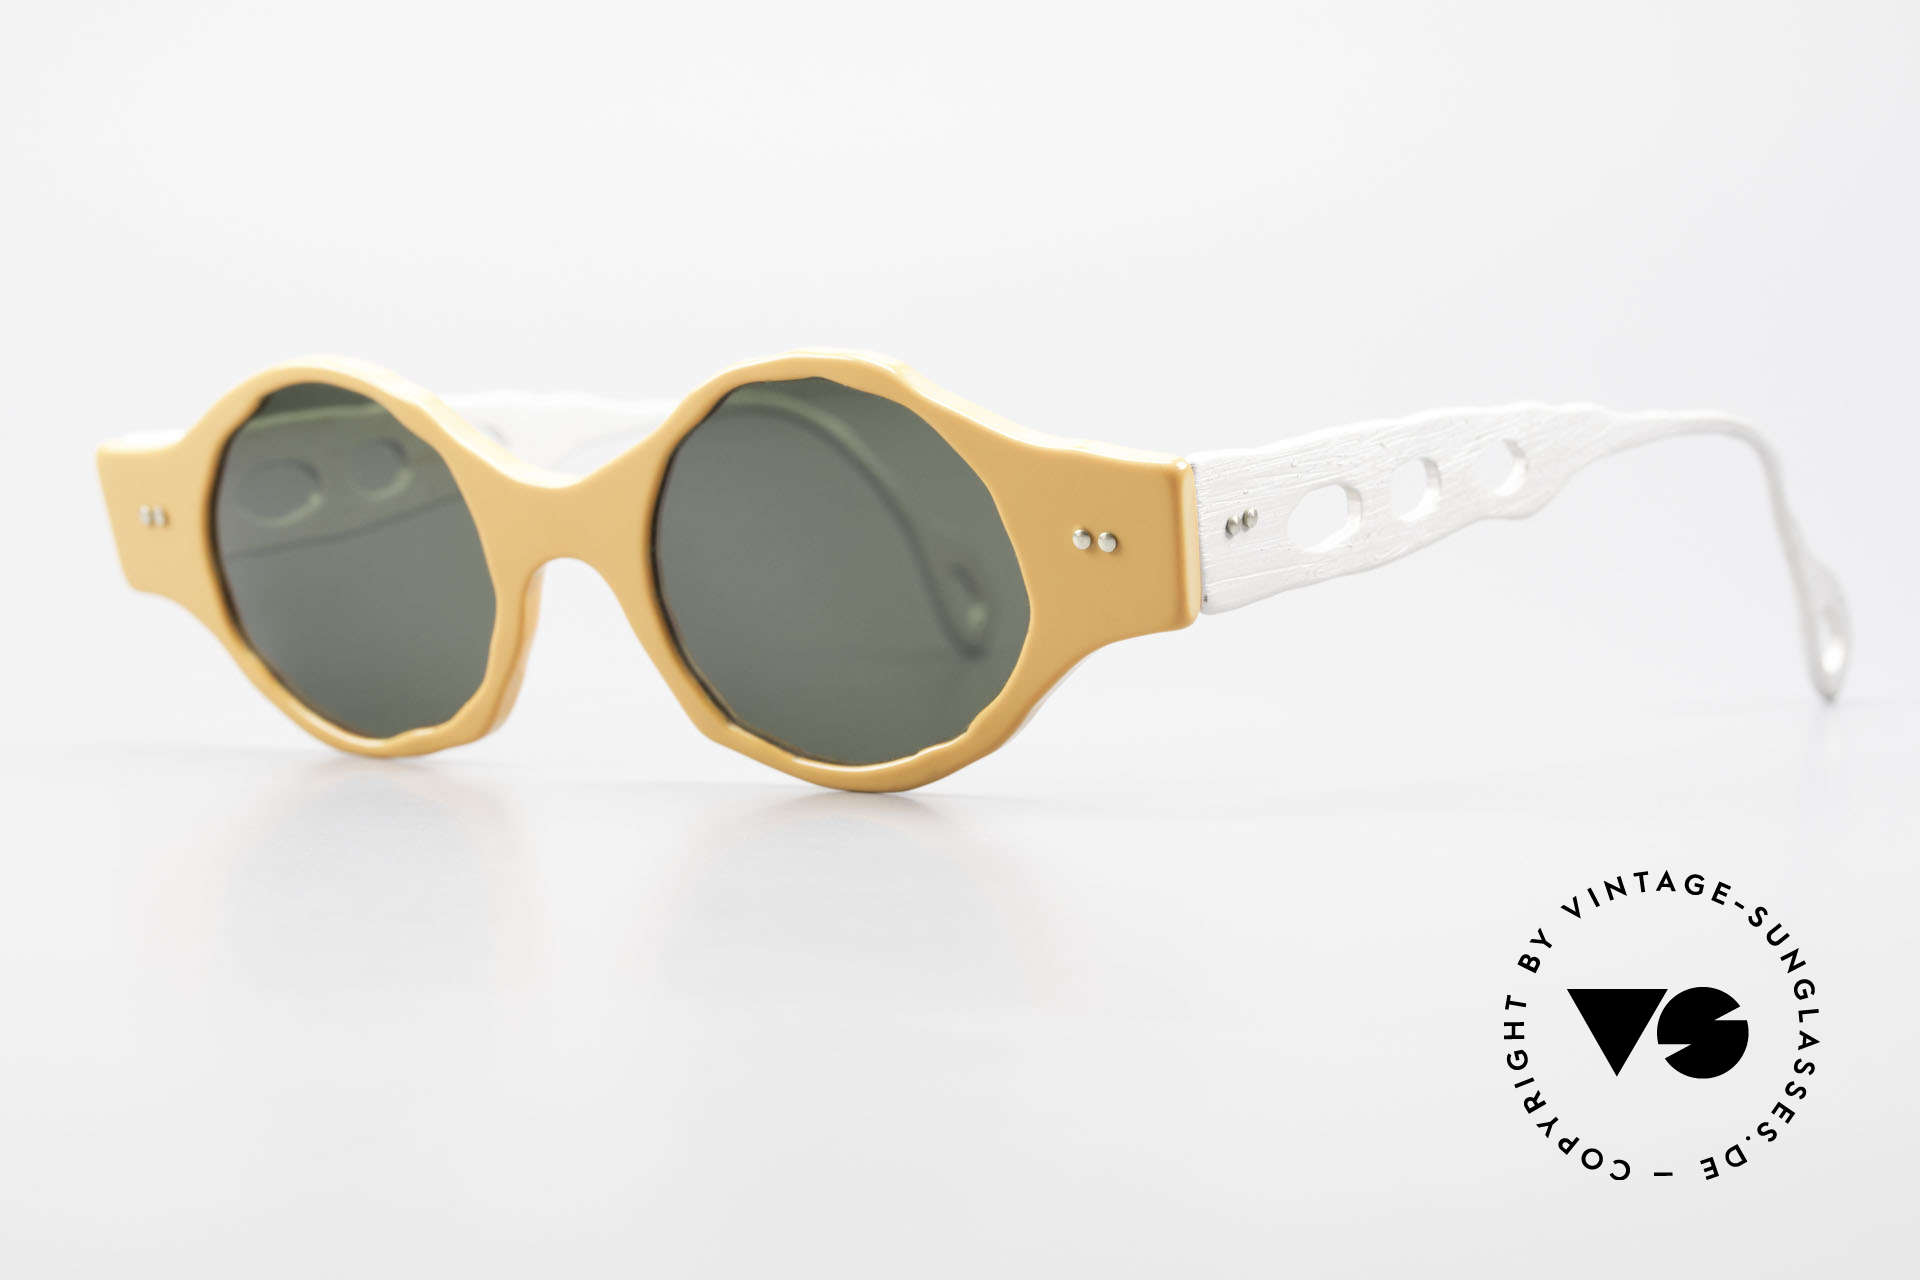 Theo Belgium Eye-Witness BK51 Avant-Garde Vintage Shades, made for the avant-garde, individualists; trend-setters, Made for Men and Women